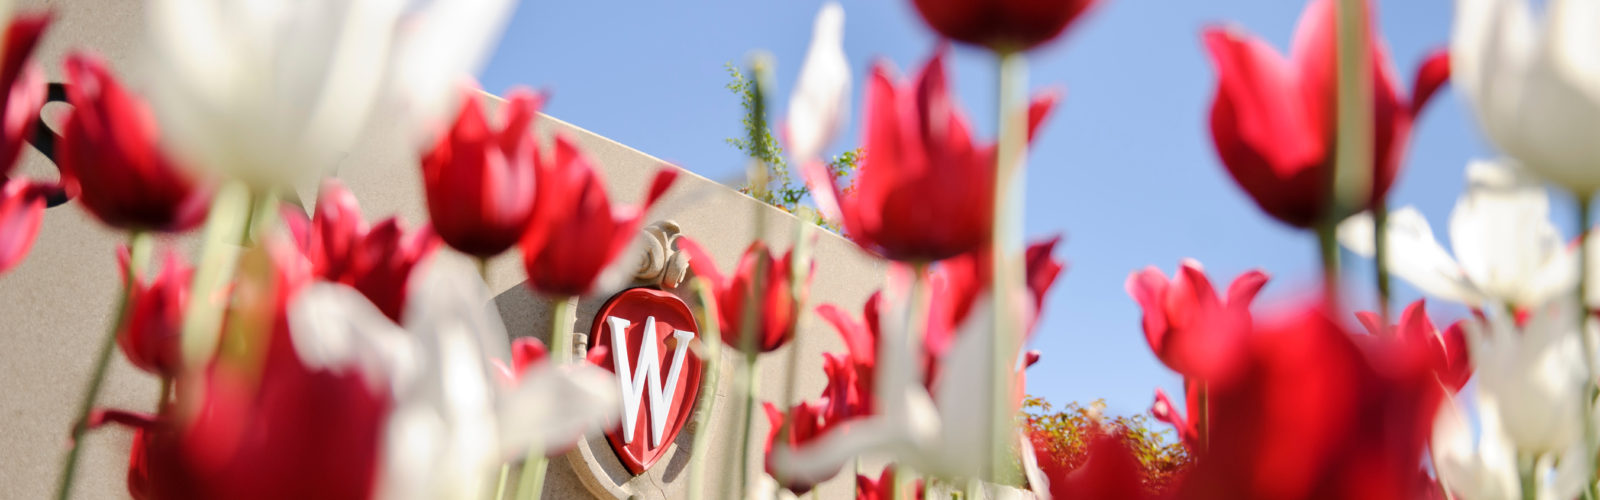 W crest seen through red tulips